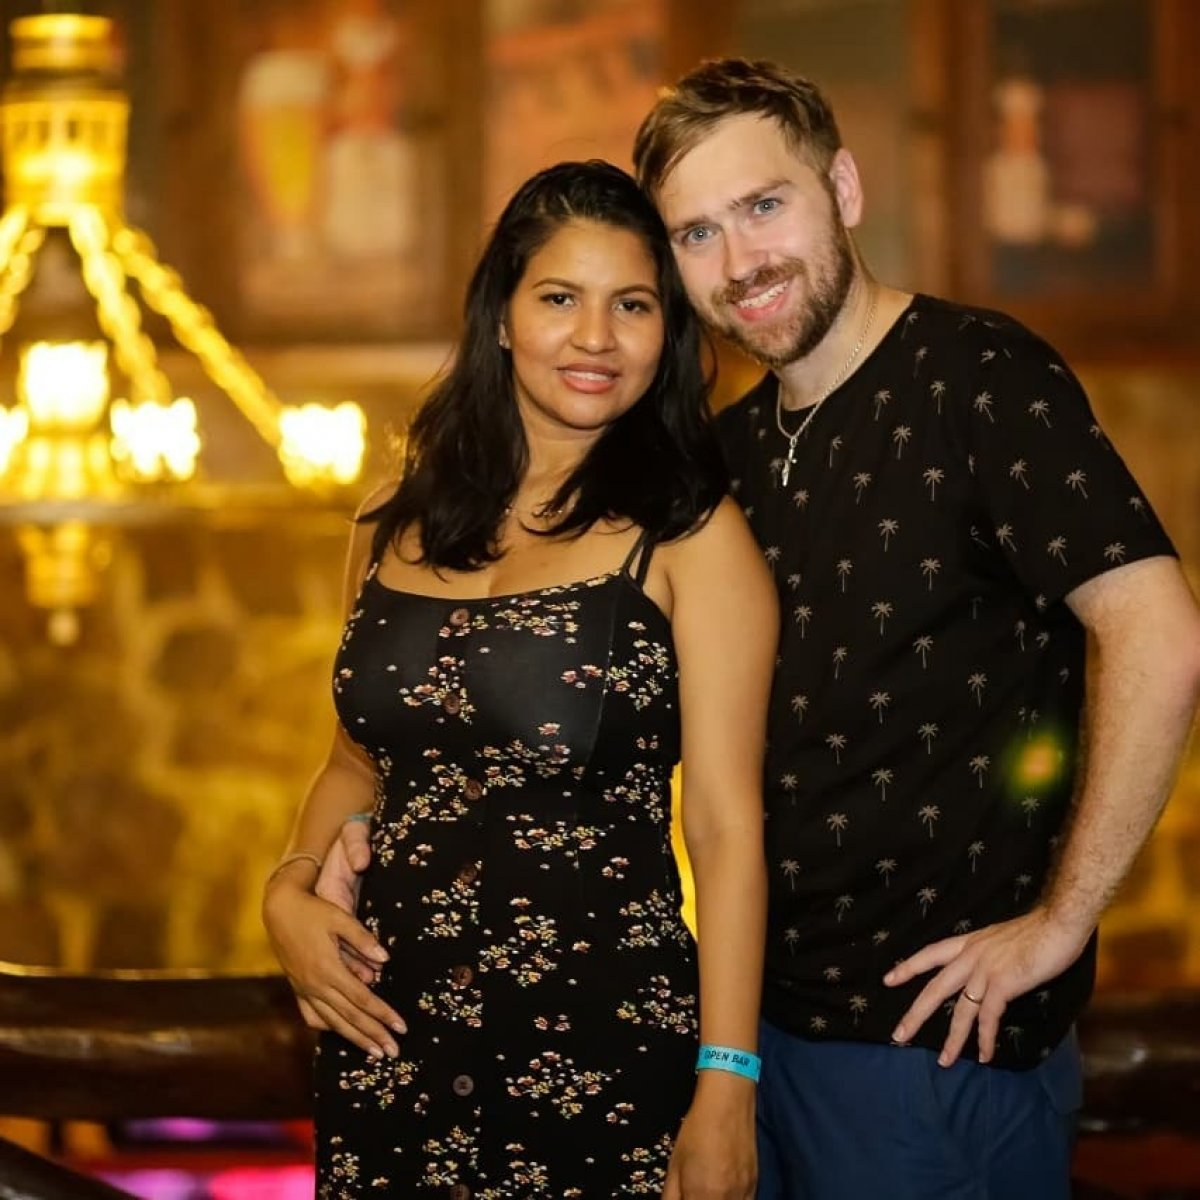 90 Day Fiance' spoilers: Are Paul Staehle and Karine Martins